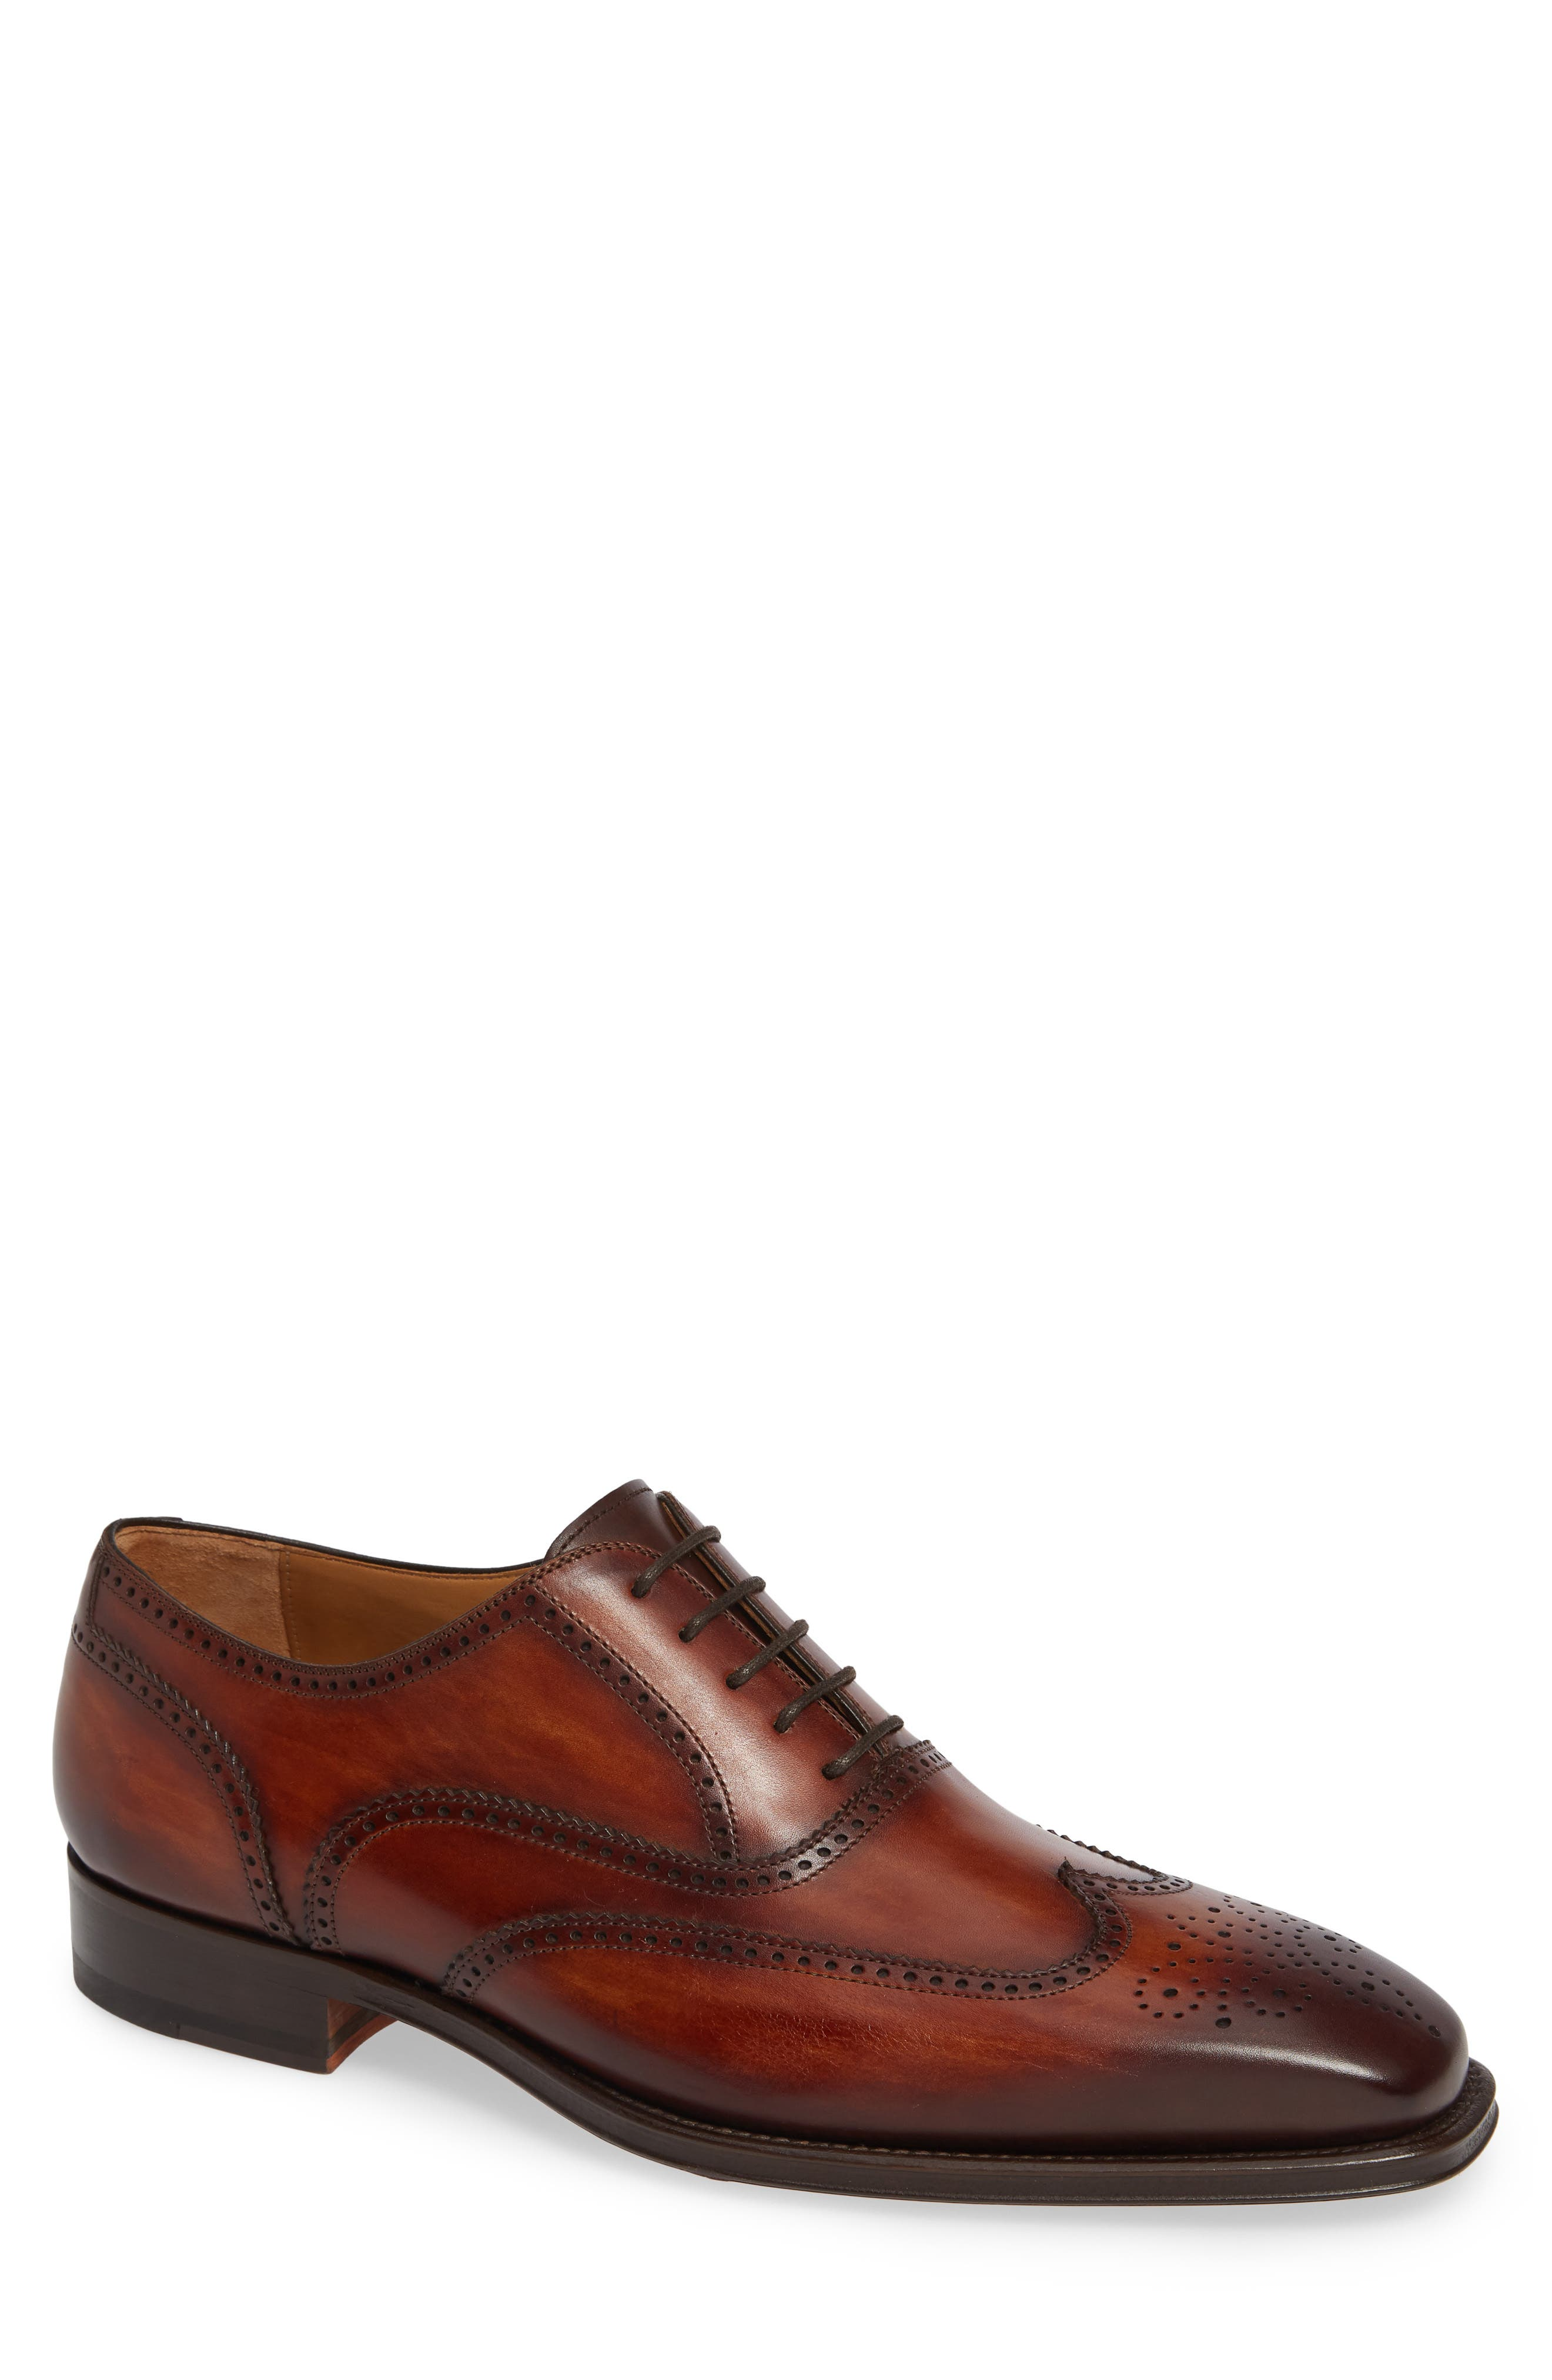 Ledger Wingtip,                             Main thumbnail 1, color,                             COGNAC LEATHER